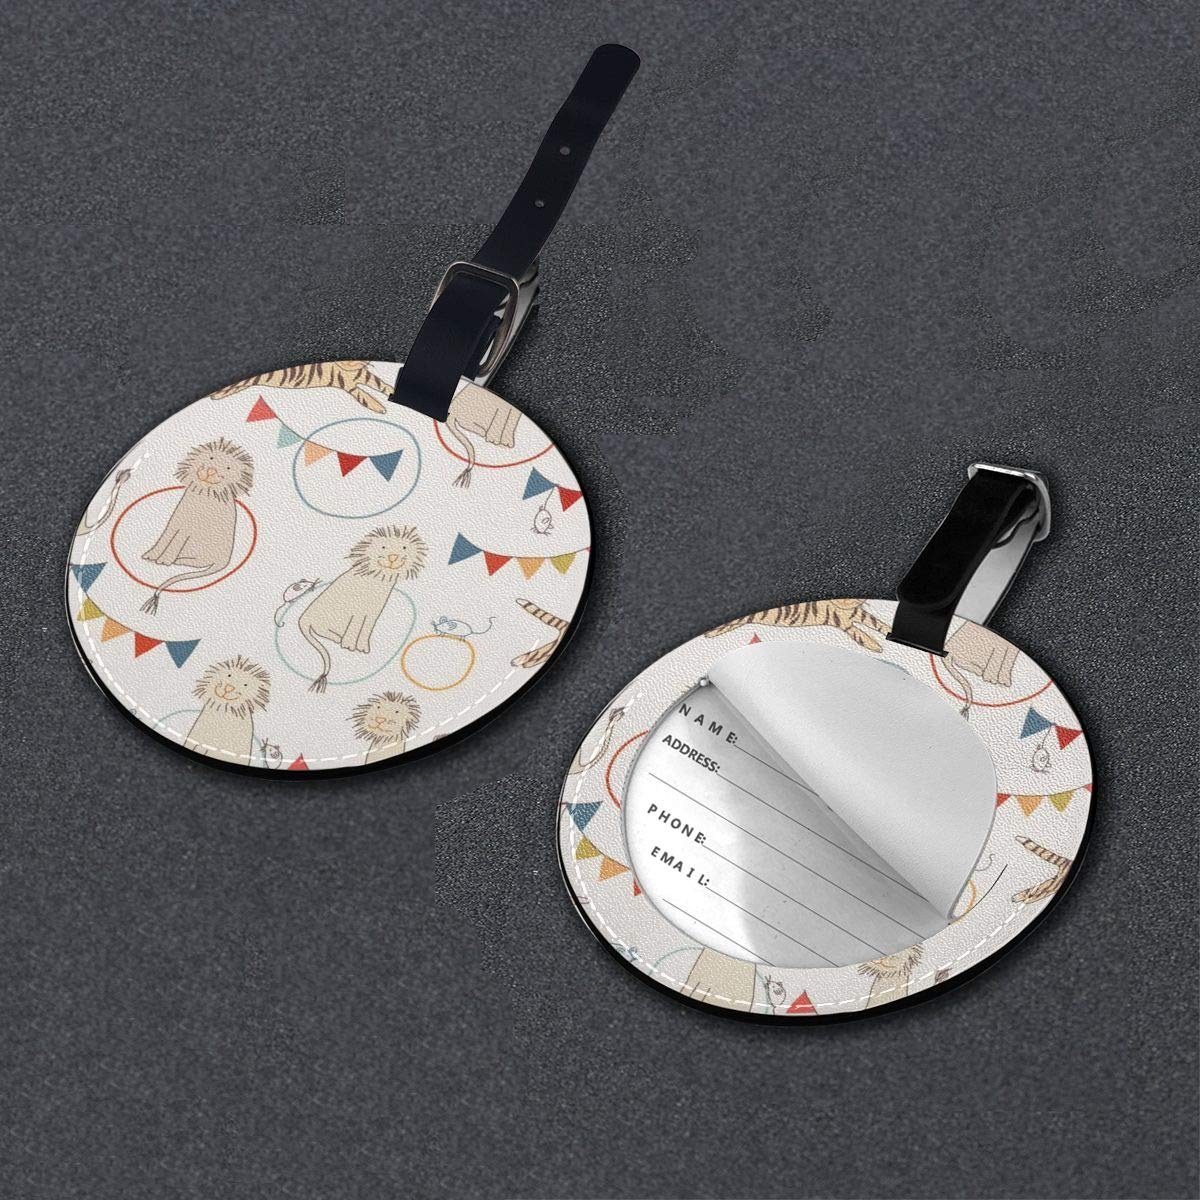 Cute Lion And Tiger Luggage Tags Suitcase Luggage Tags Travel Accessories Baggage Name Tags 2 PCS